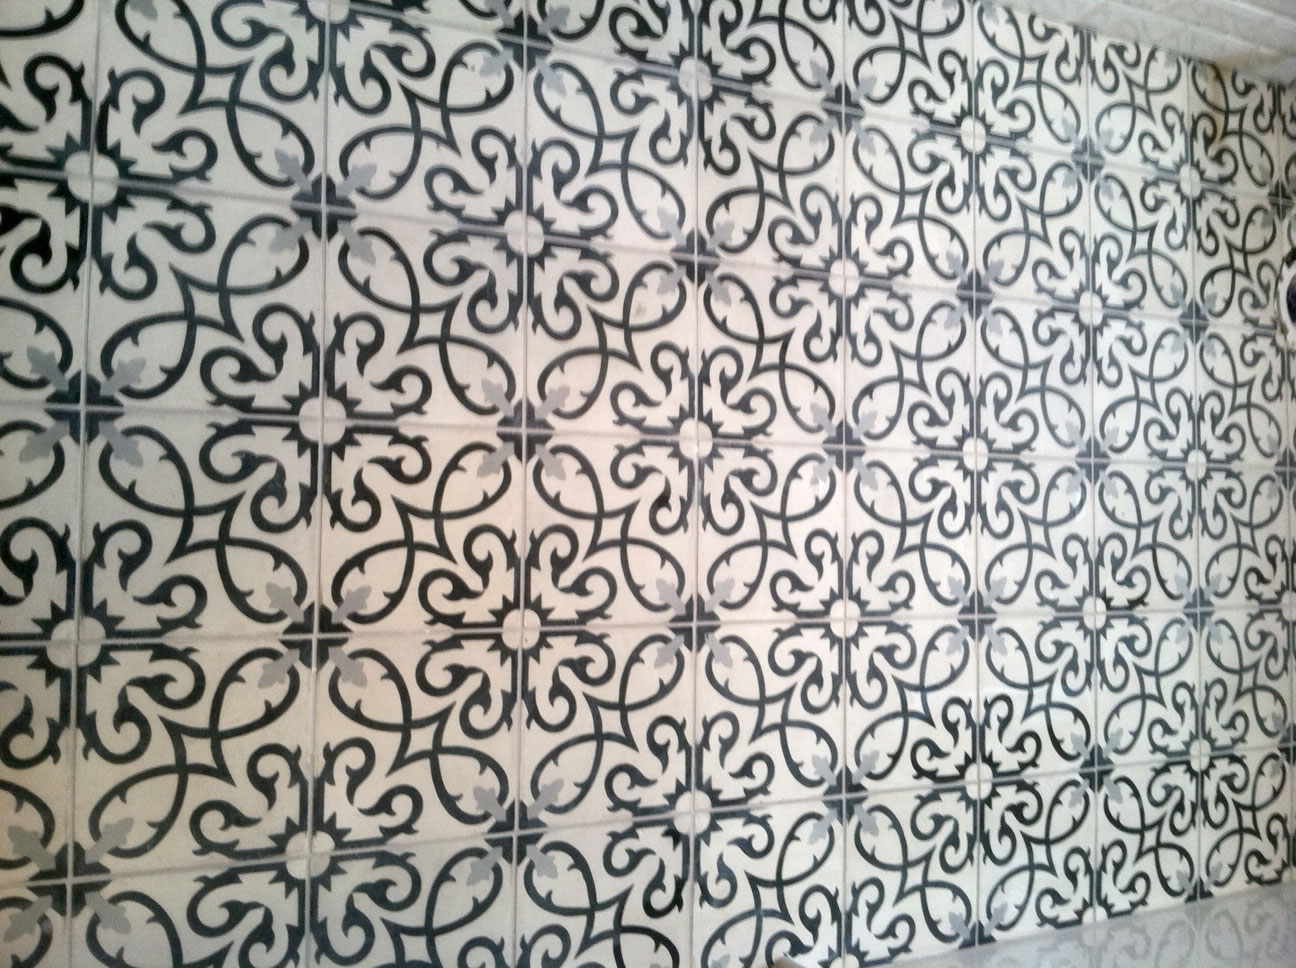 Mosaic House Moroccan tile Lucifer C14-4-24 White Black Silver, gray  cement, encaustic, field, pattern